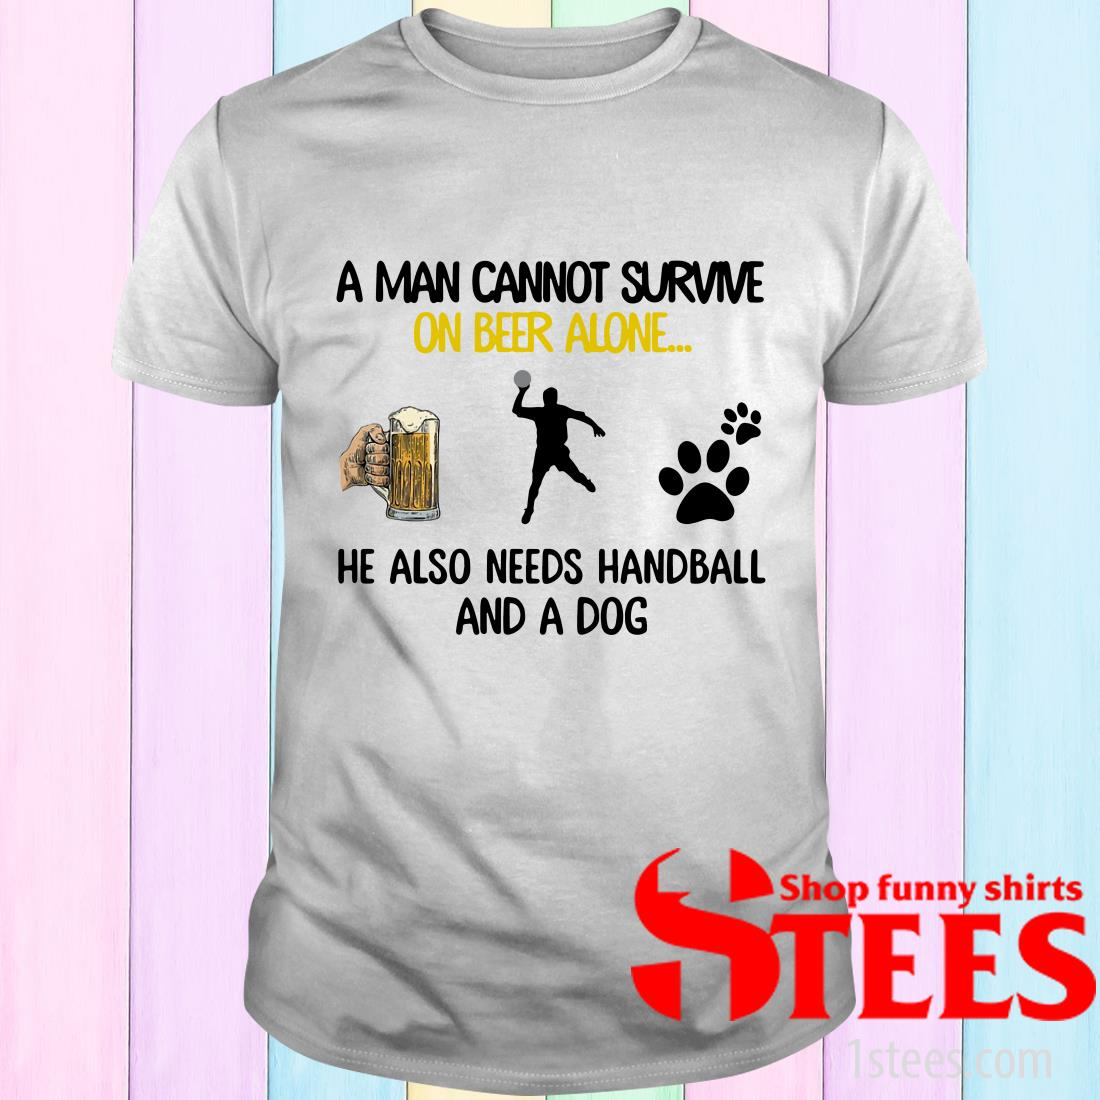 A Man Cannot Survive On Beer Alone He Also Needs Handball And A Dog T-Shirt